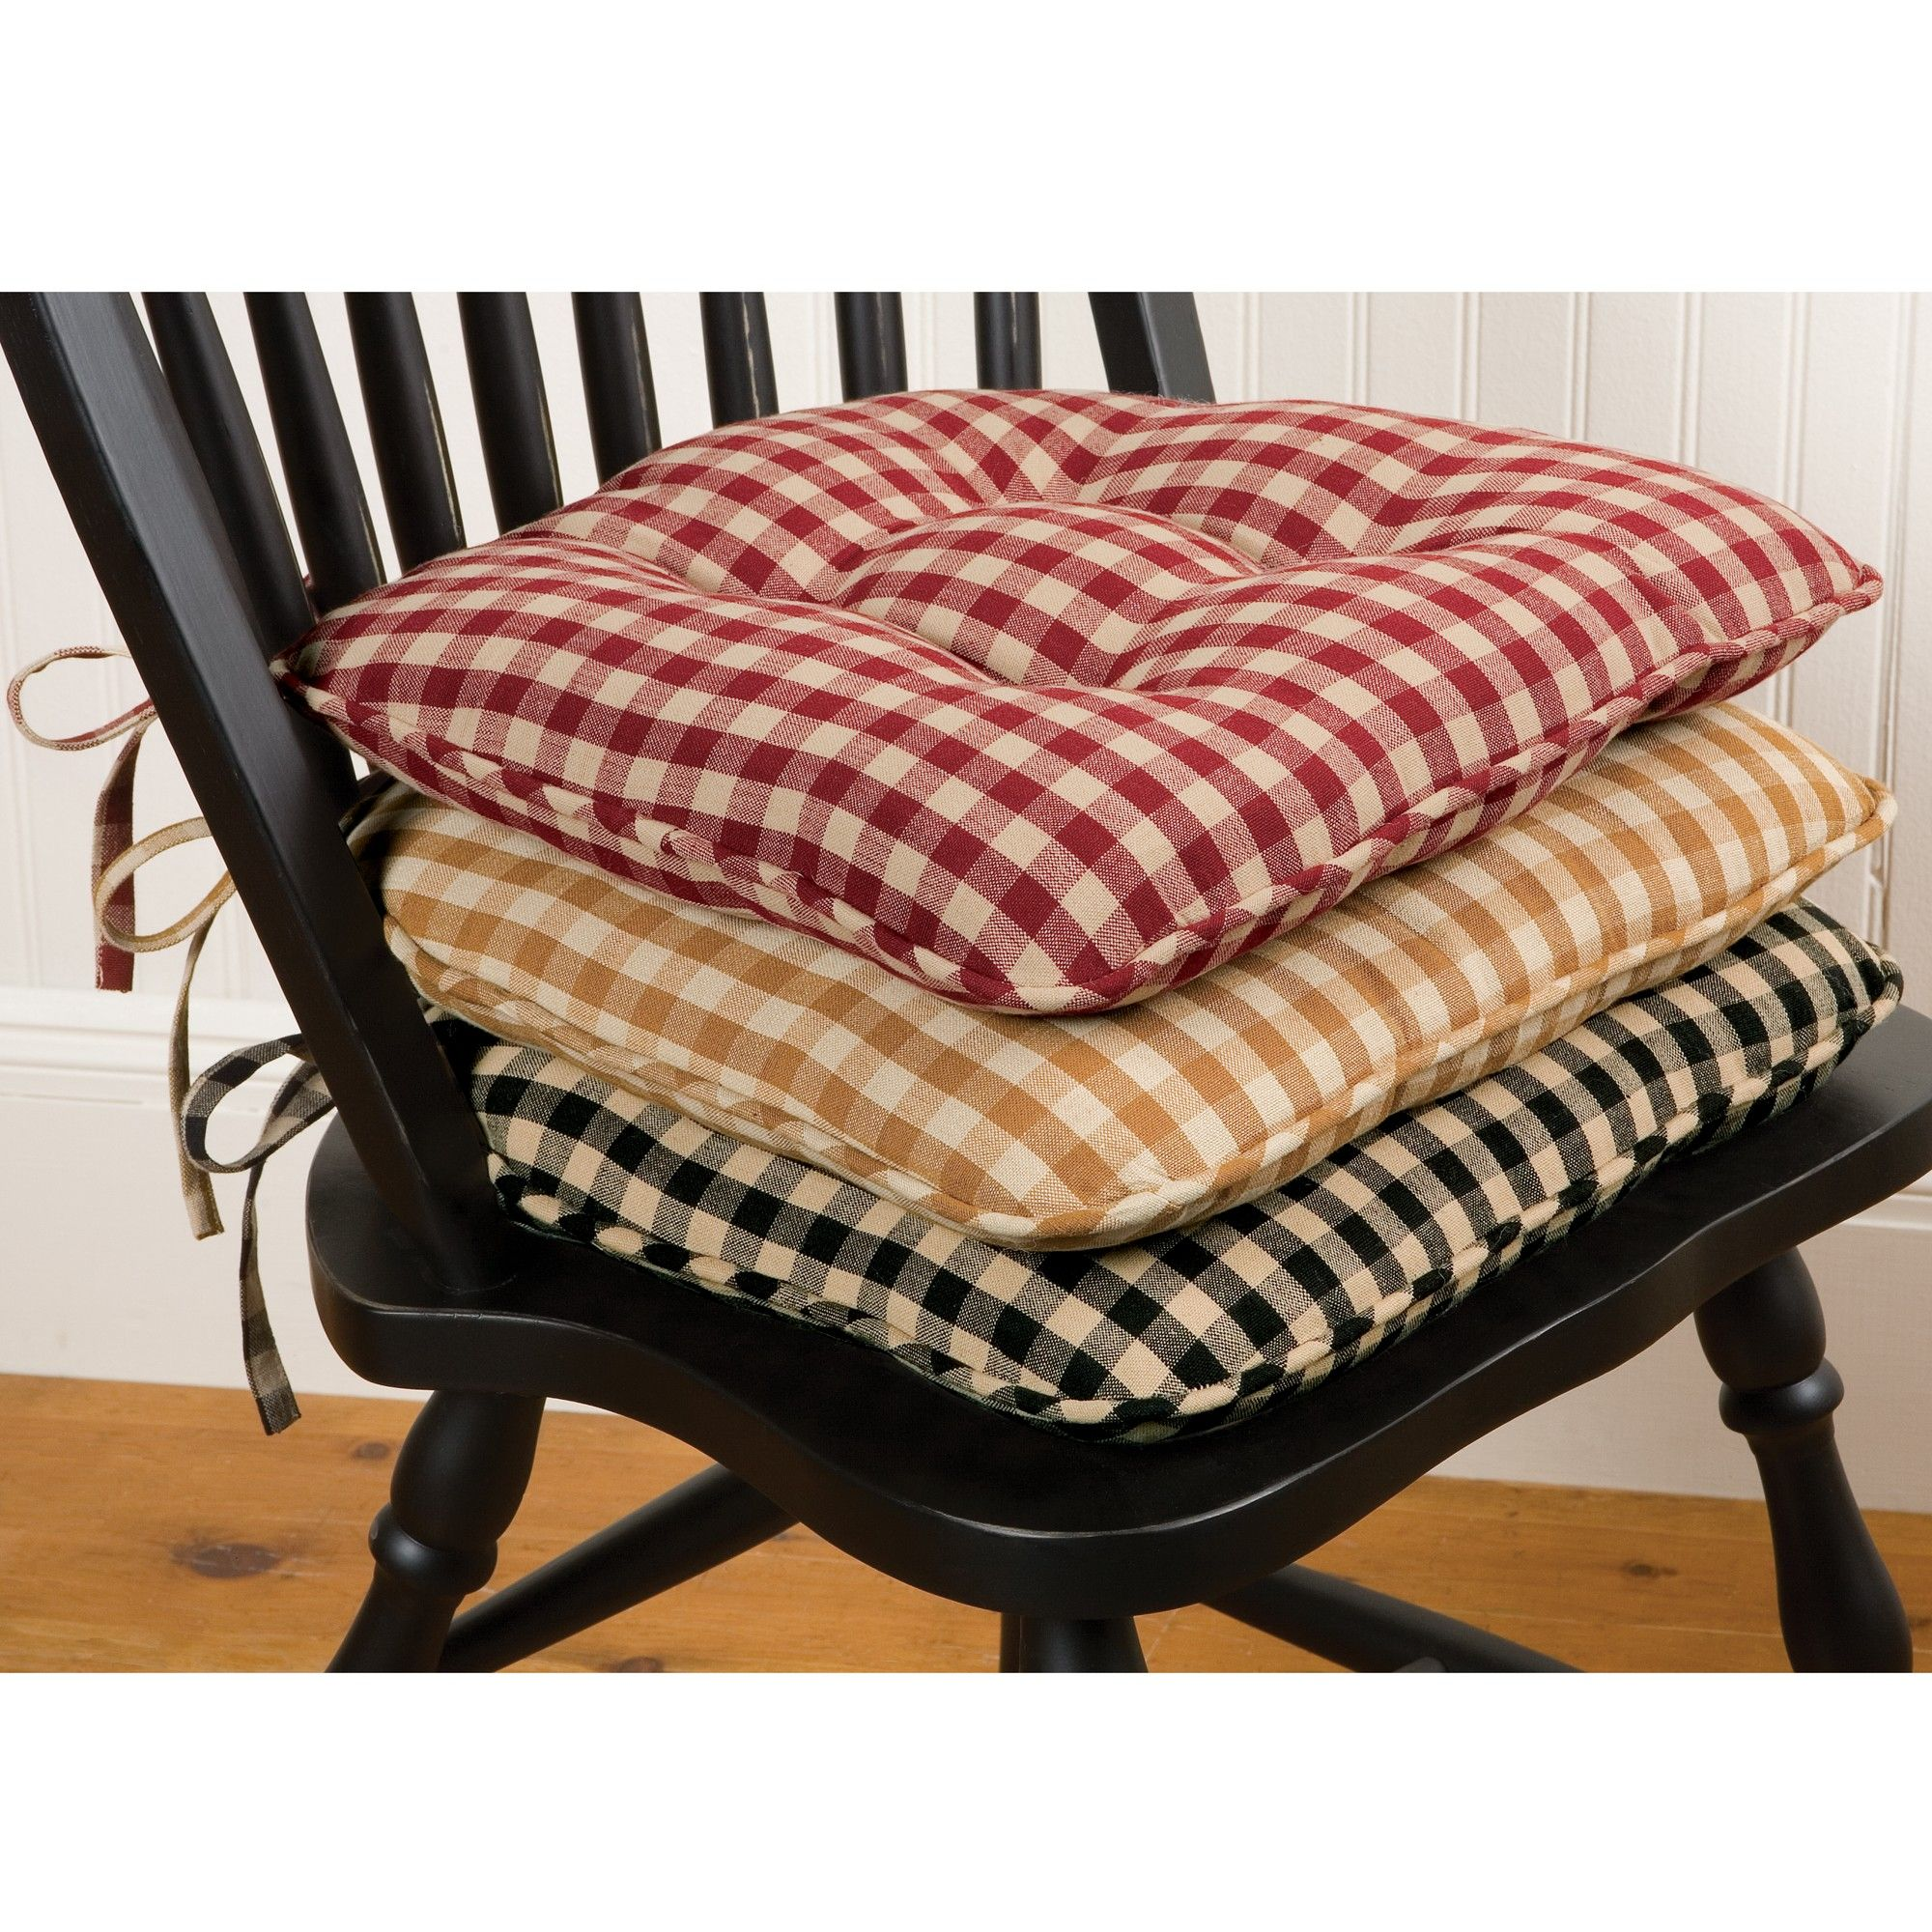 Sketch Of Country Chair Pads Cozy And Stylish